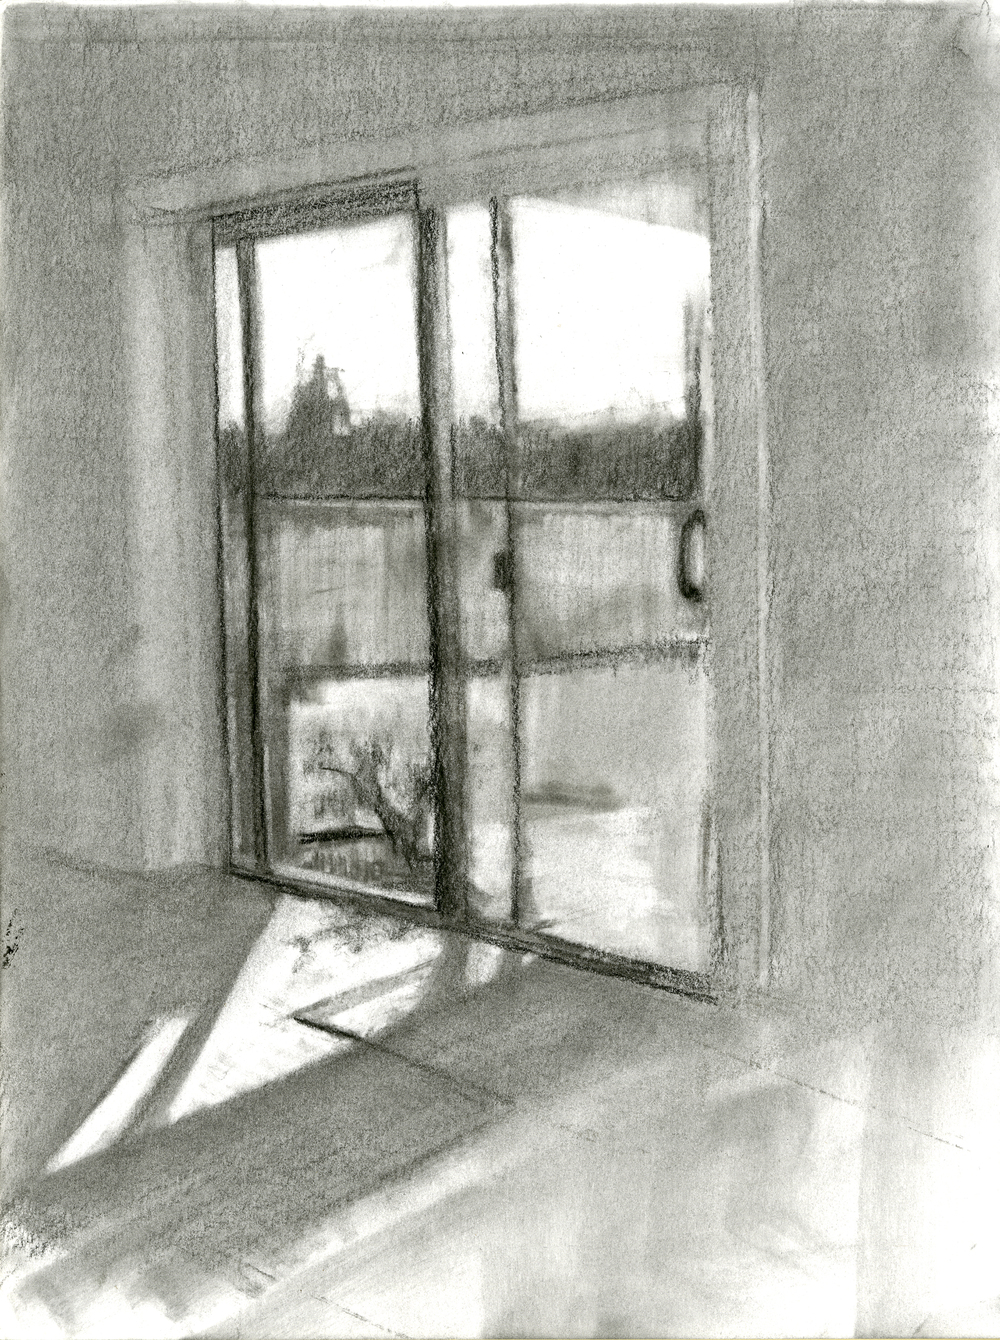 """Warm Interior, Charcoal on Paper, 12"""" x 9"""", 2016"""